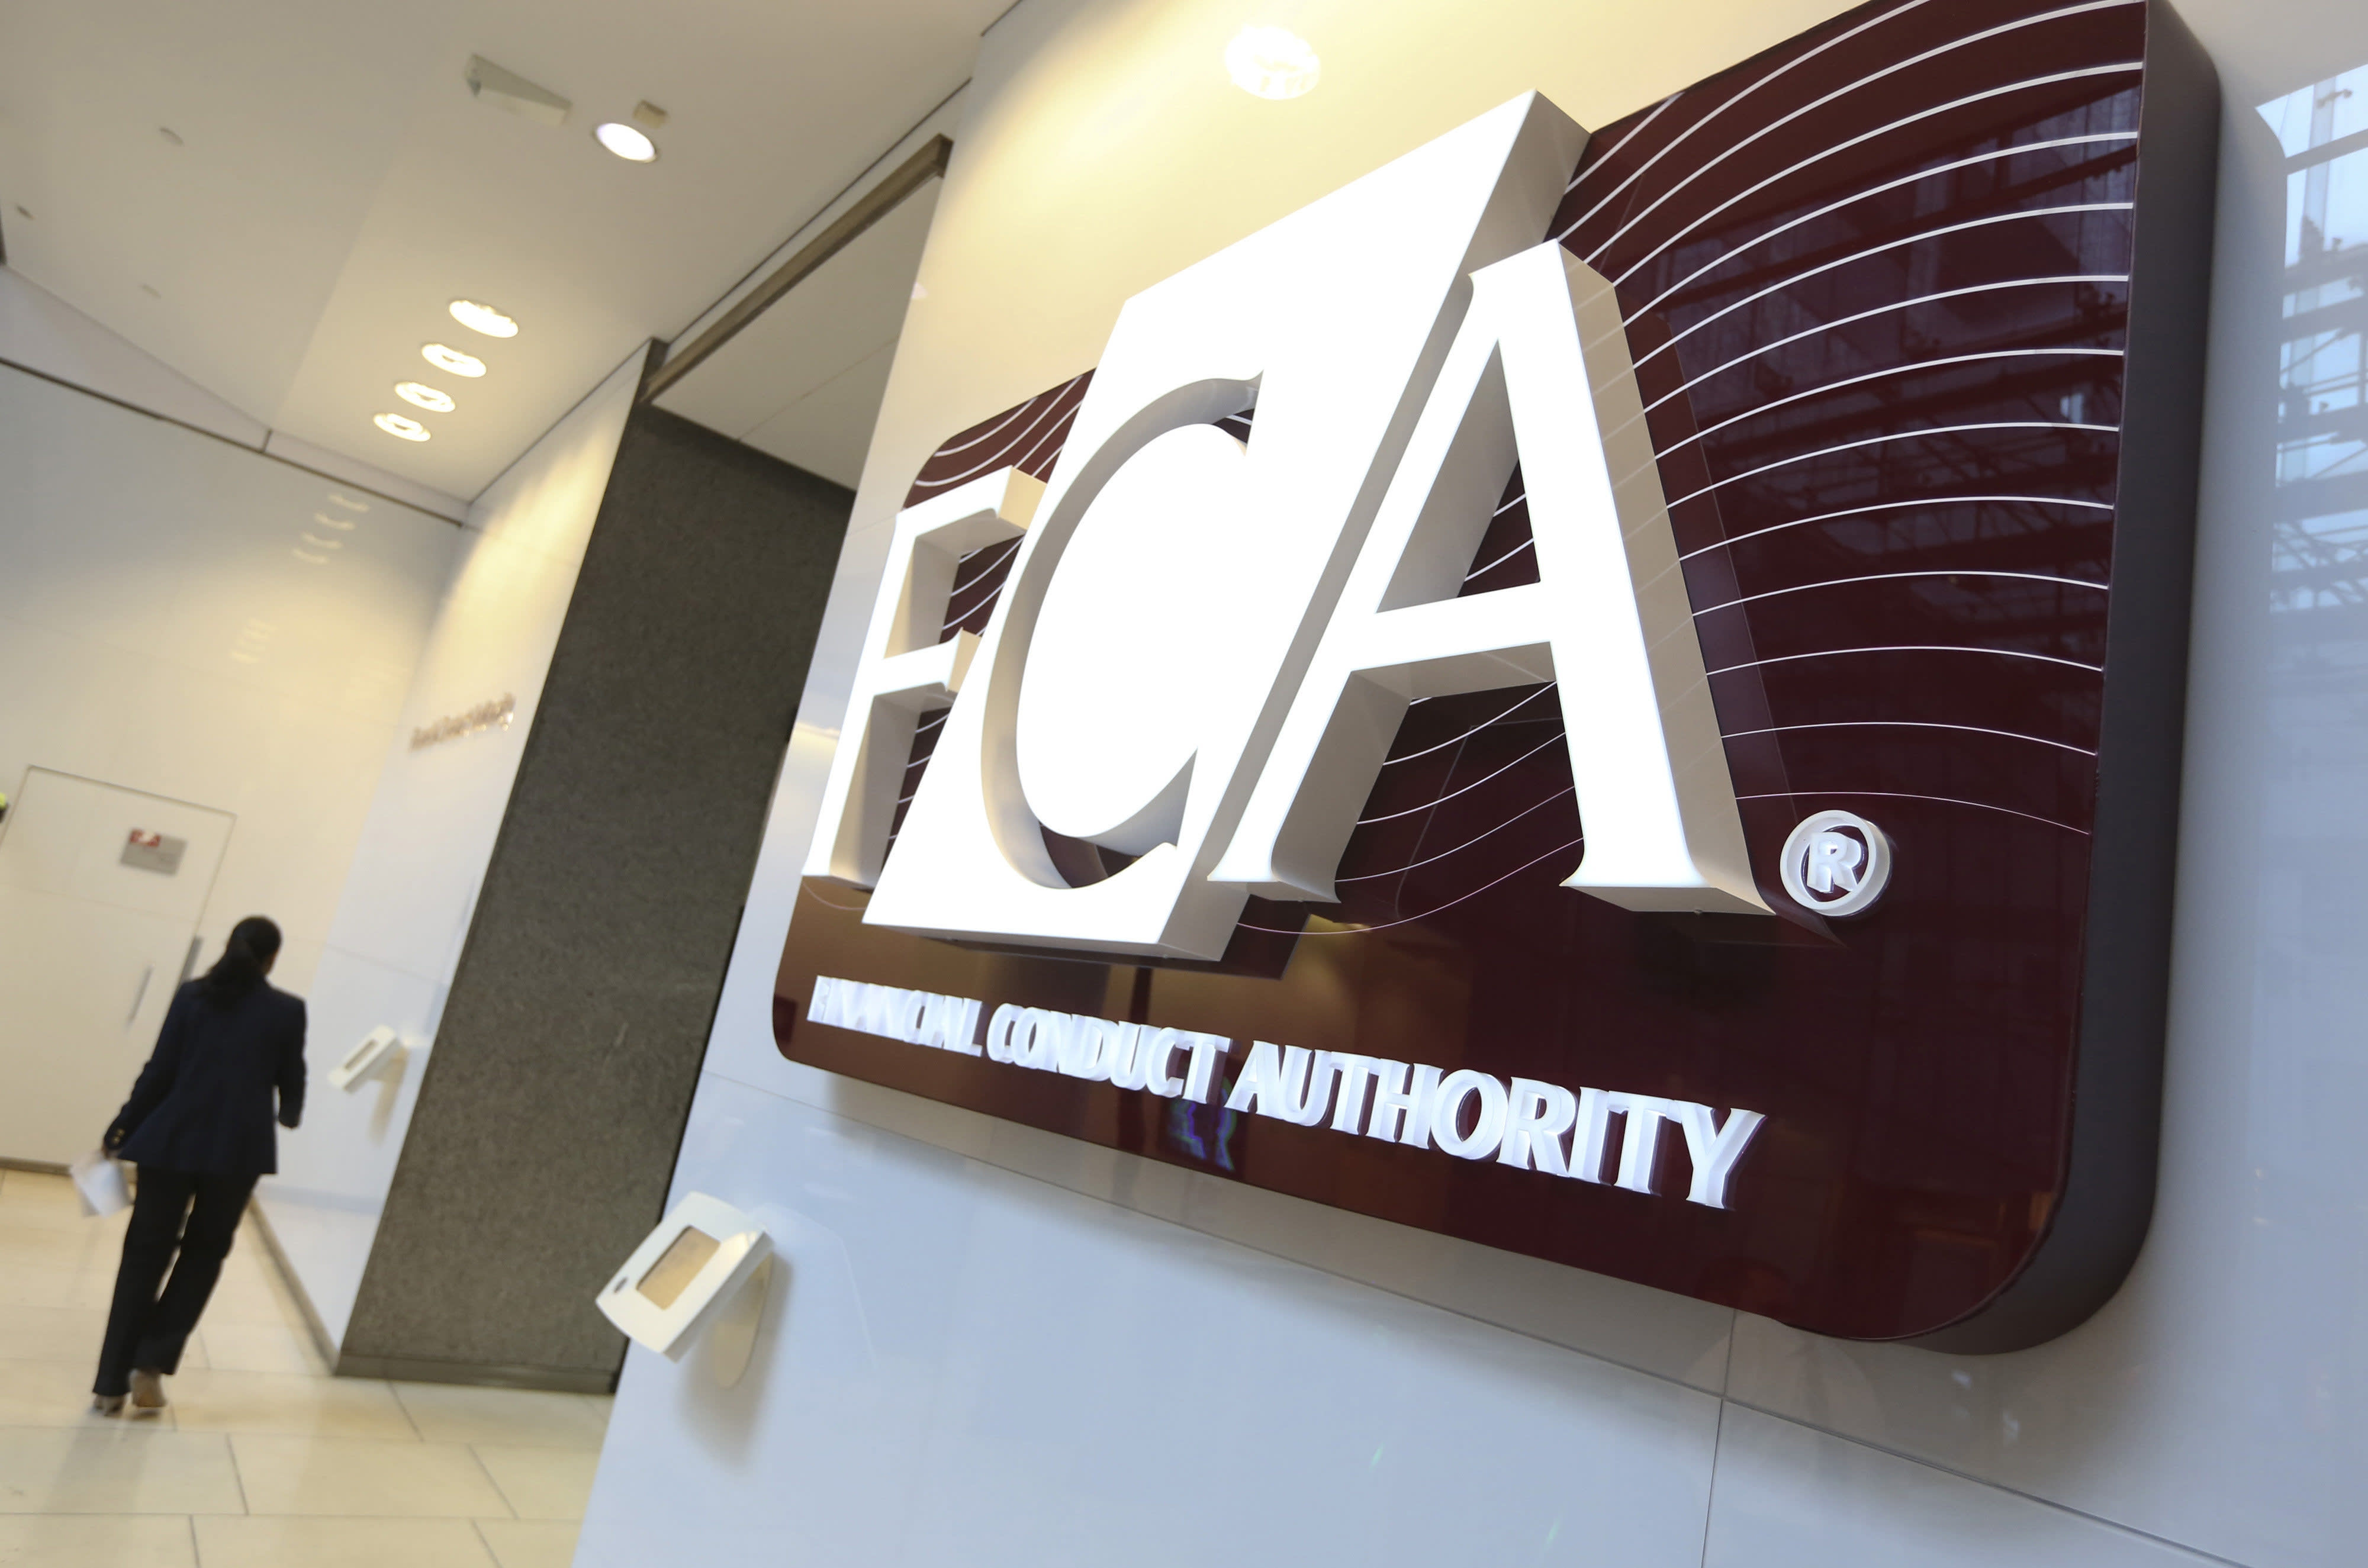 FCA fines Goldman Sachs £34.3m for Mifid breaches